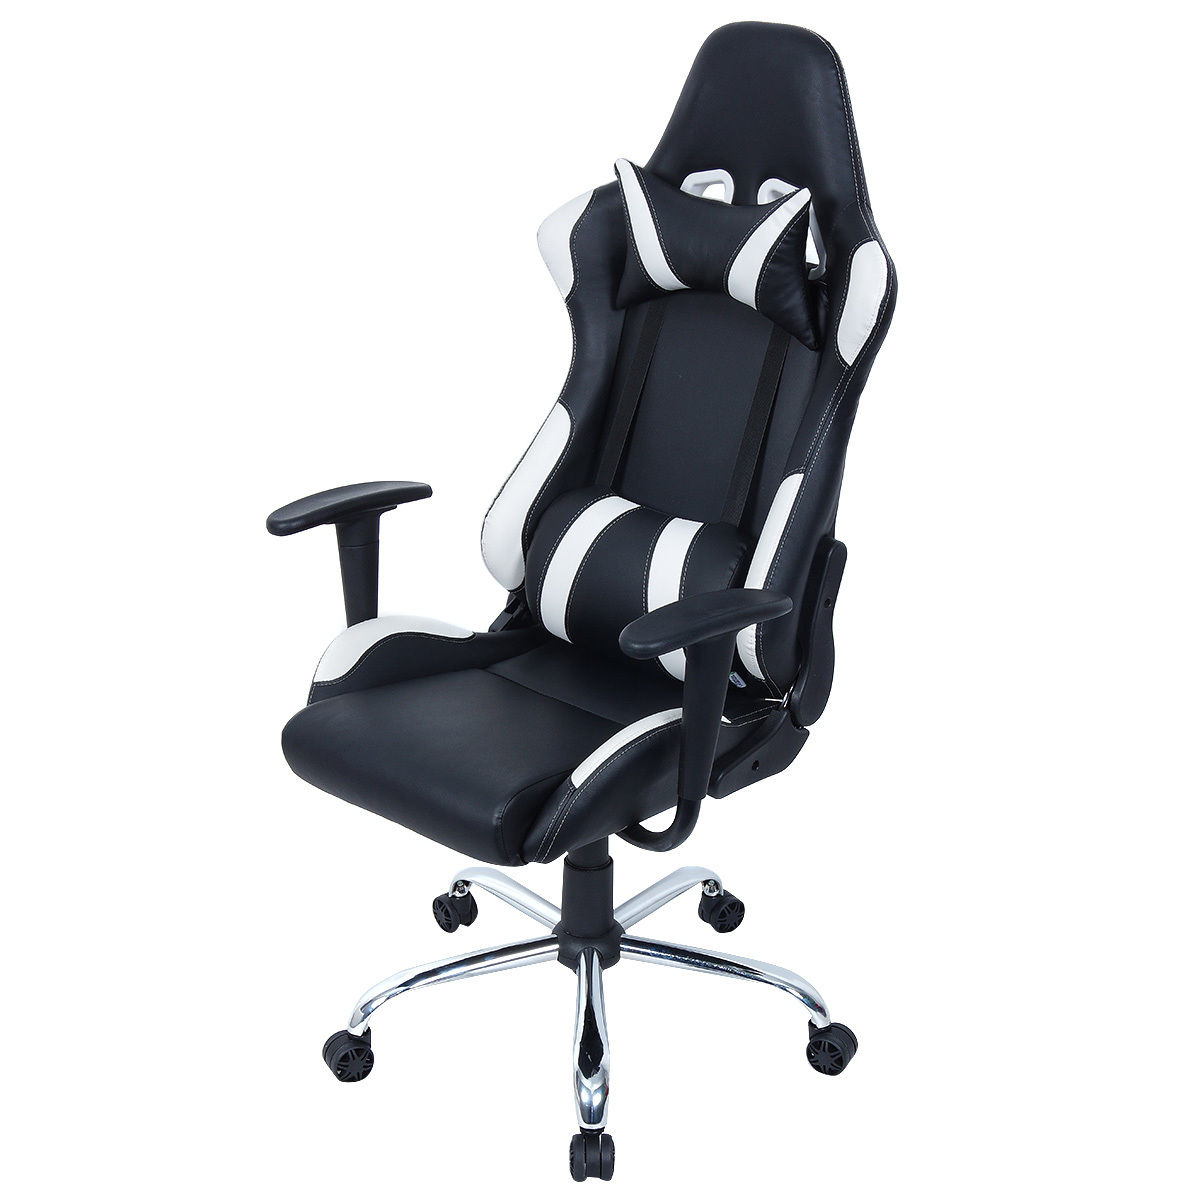 Costway Black and White Gaming Chair Office Chair Race Computer Game Adjustable